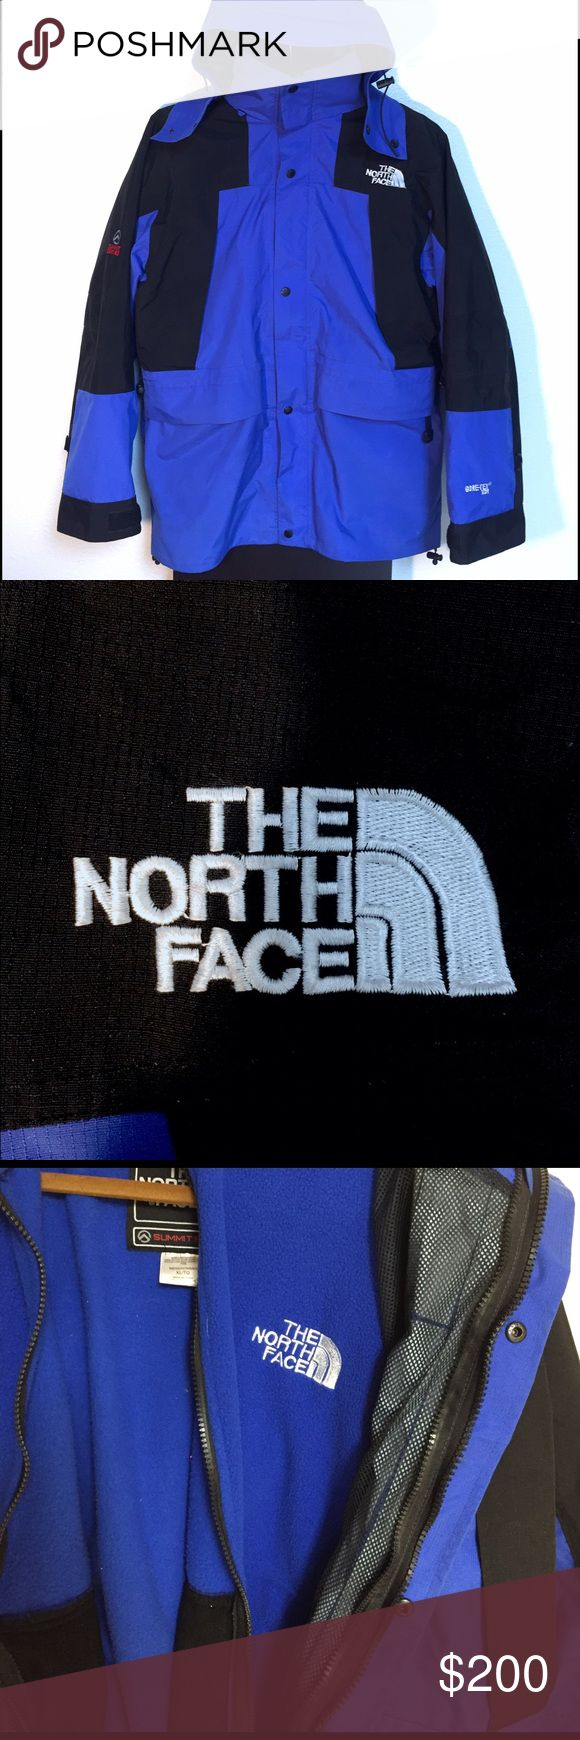 "❄️The North Face Summit Jacket w/ Gore-Tex💦 Vintage 90s The North Face Summit Series Black and Blue Shell + Inner Fleece. Gore-Tex XCR premium synthetic waterproof fabric permeable to air and water vapor. XL measures 26"" pit to pit and 31"" collar to waist. Hood with strap and buckle to adjust fit. Armpit Vents. 4 outer zipper pockets with 1 zipper pocket inside shell. Inner fleece has 2 pockets with zippers. Overall great condition, no tears, scratches or holes. There is a small smear on…"